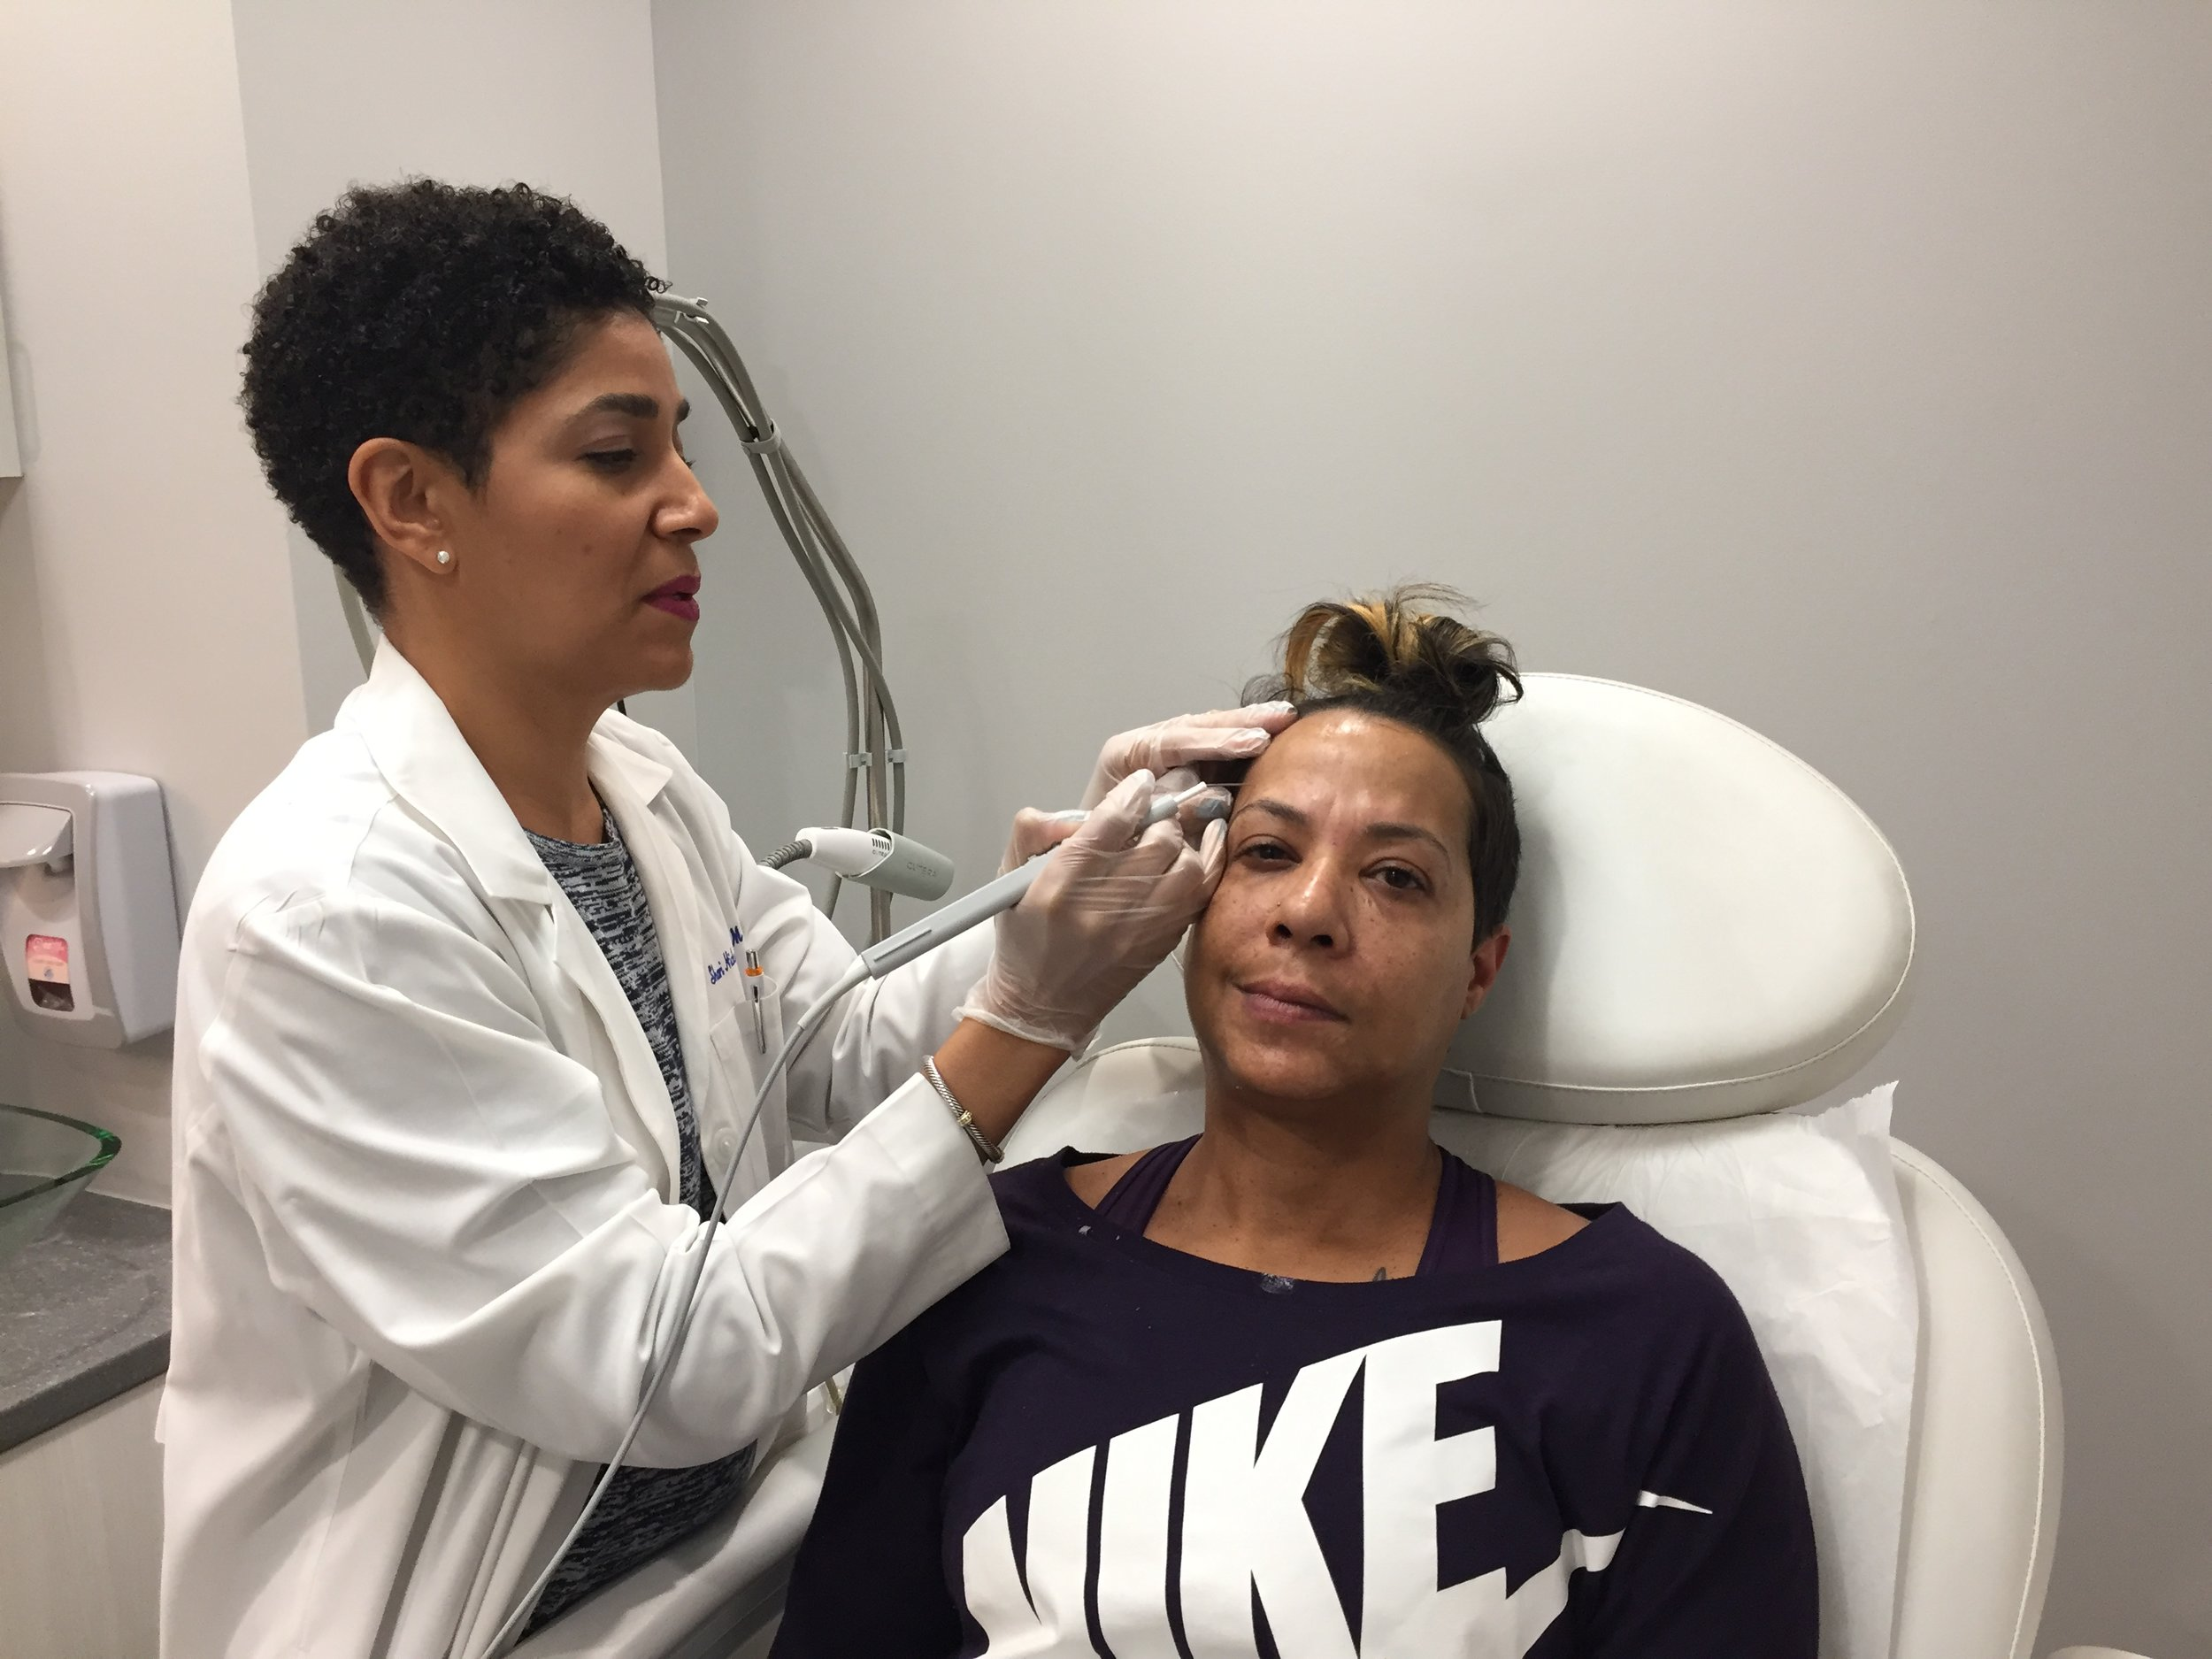 Image 1: The beginning of the process with the use of numbing cream BKA Lidocaine 2.5% she begin to remove the moles. Although any process is scary, Dr. Hicks-Graham made me feel very comfortable.